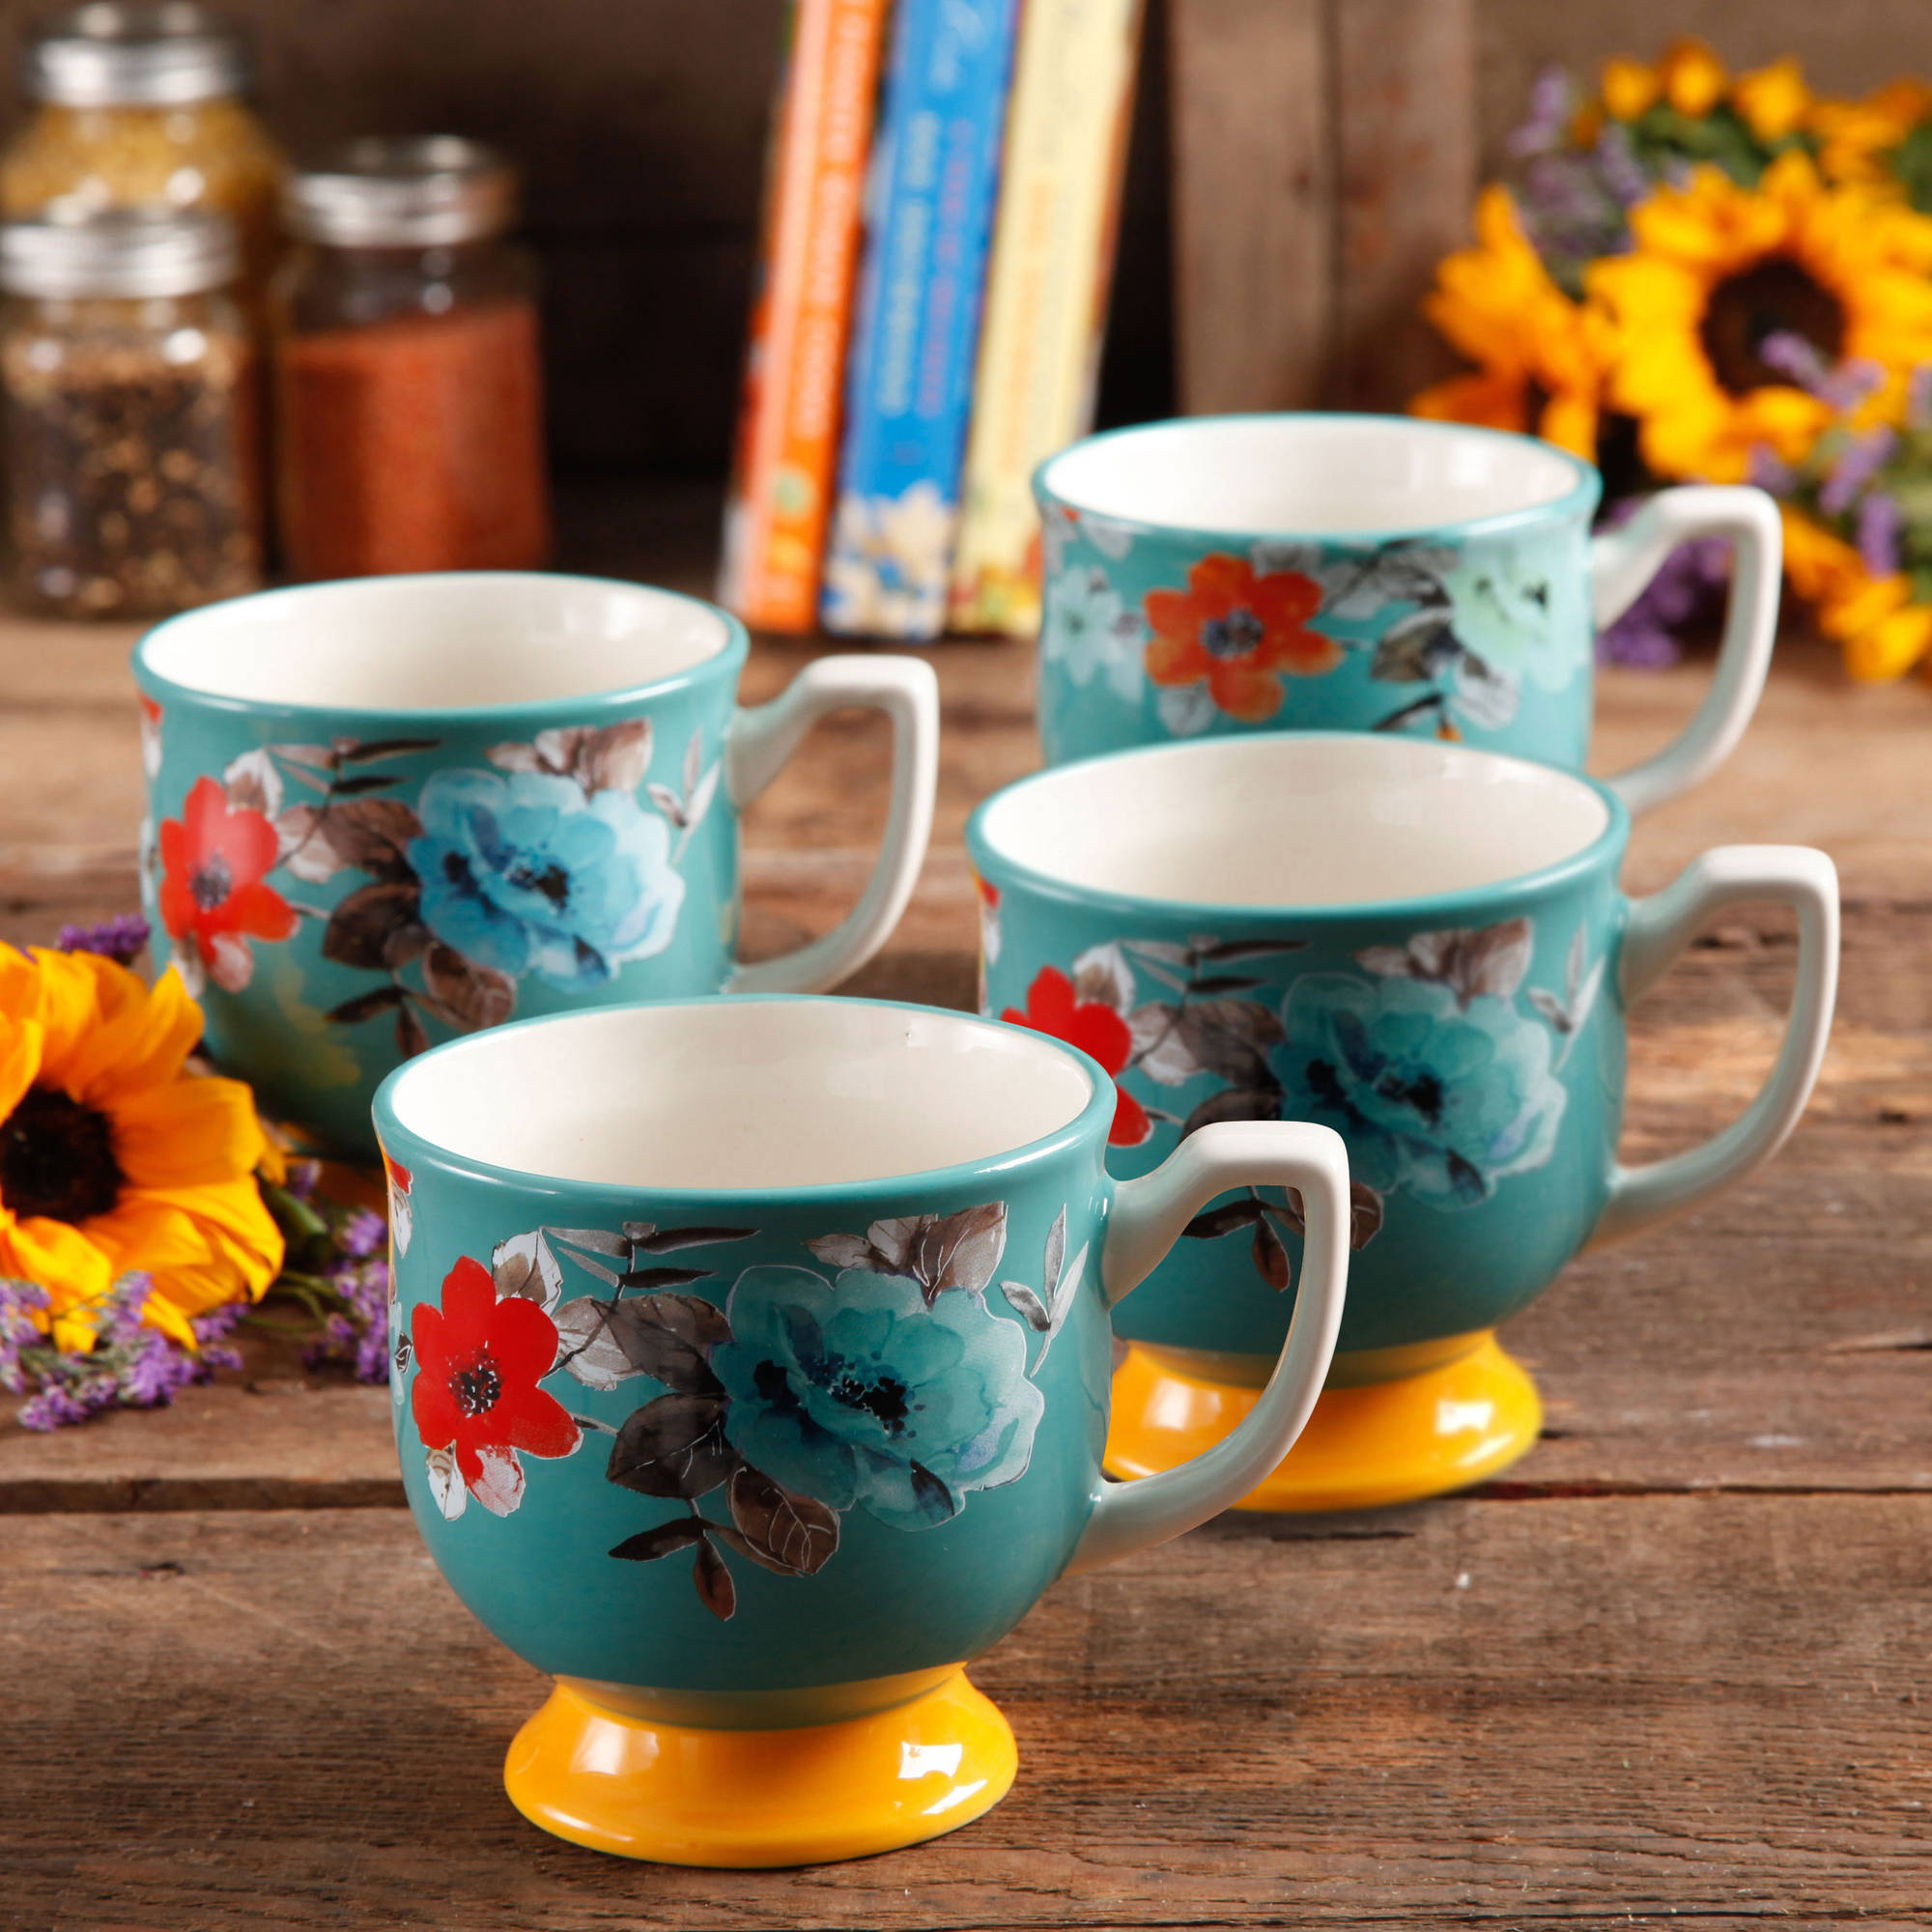 The Pioneer Woman Flea Market 15 oz Footed Decorated Mugs, Turquoise & Yellow, Set of 4